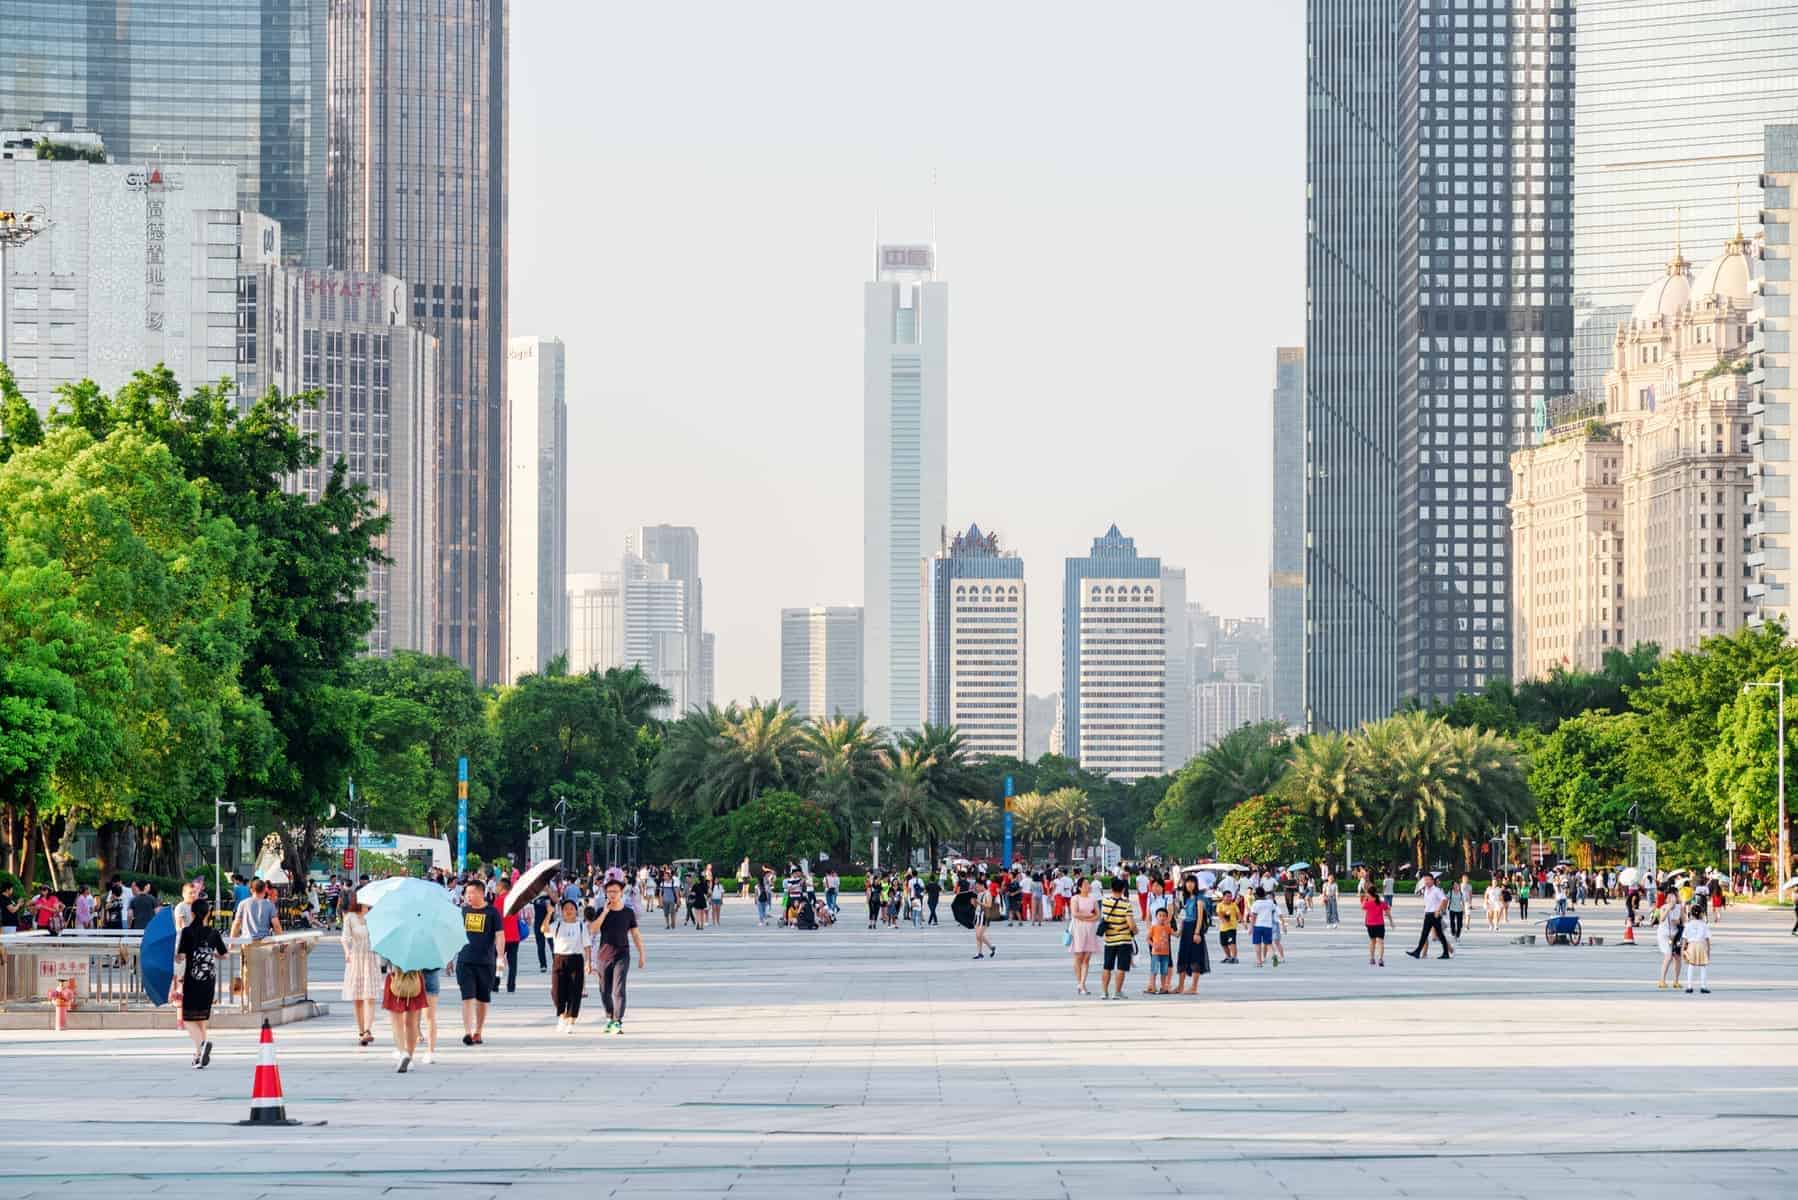 Guangzhou, China : Asian tourists walking in a scenic city park among modern buildings in the Tianhe District of the Zhujiang New Town. Guangzhou is a popular tourist destination